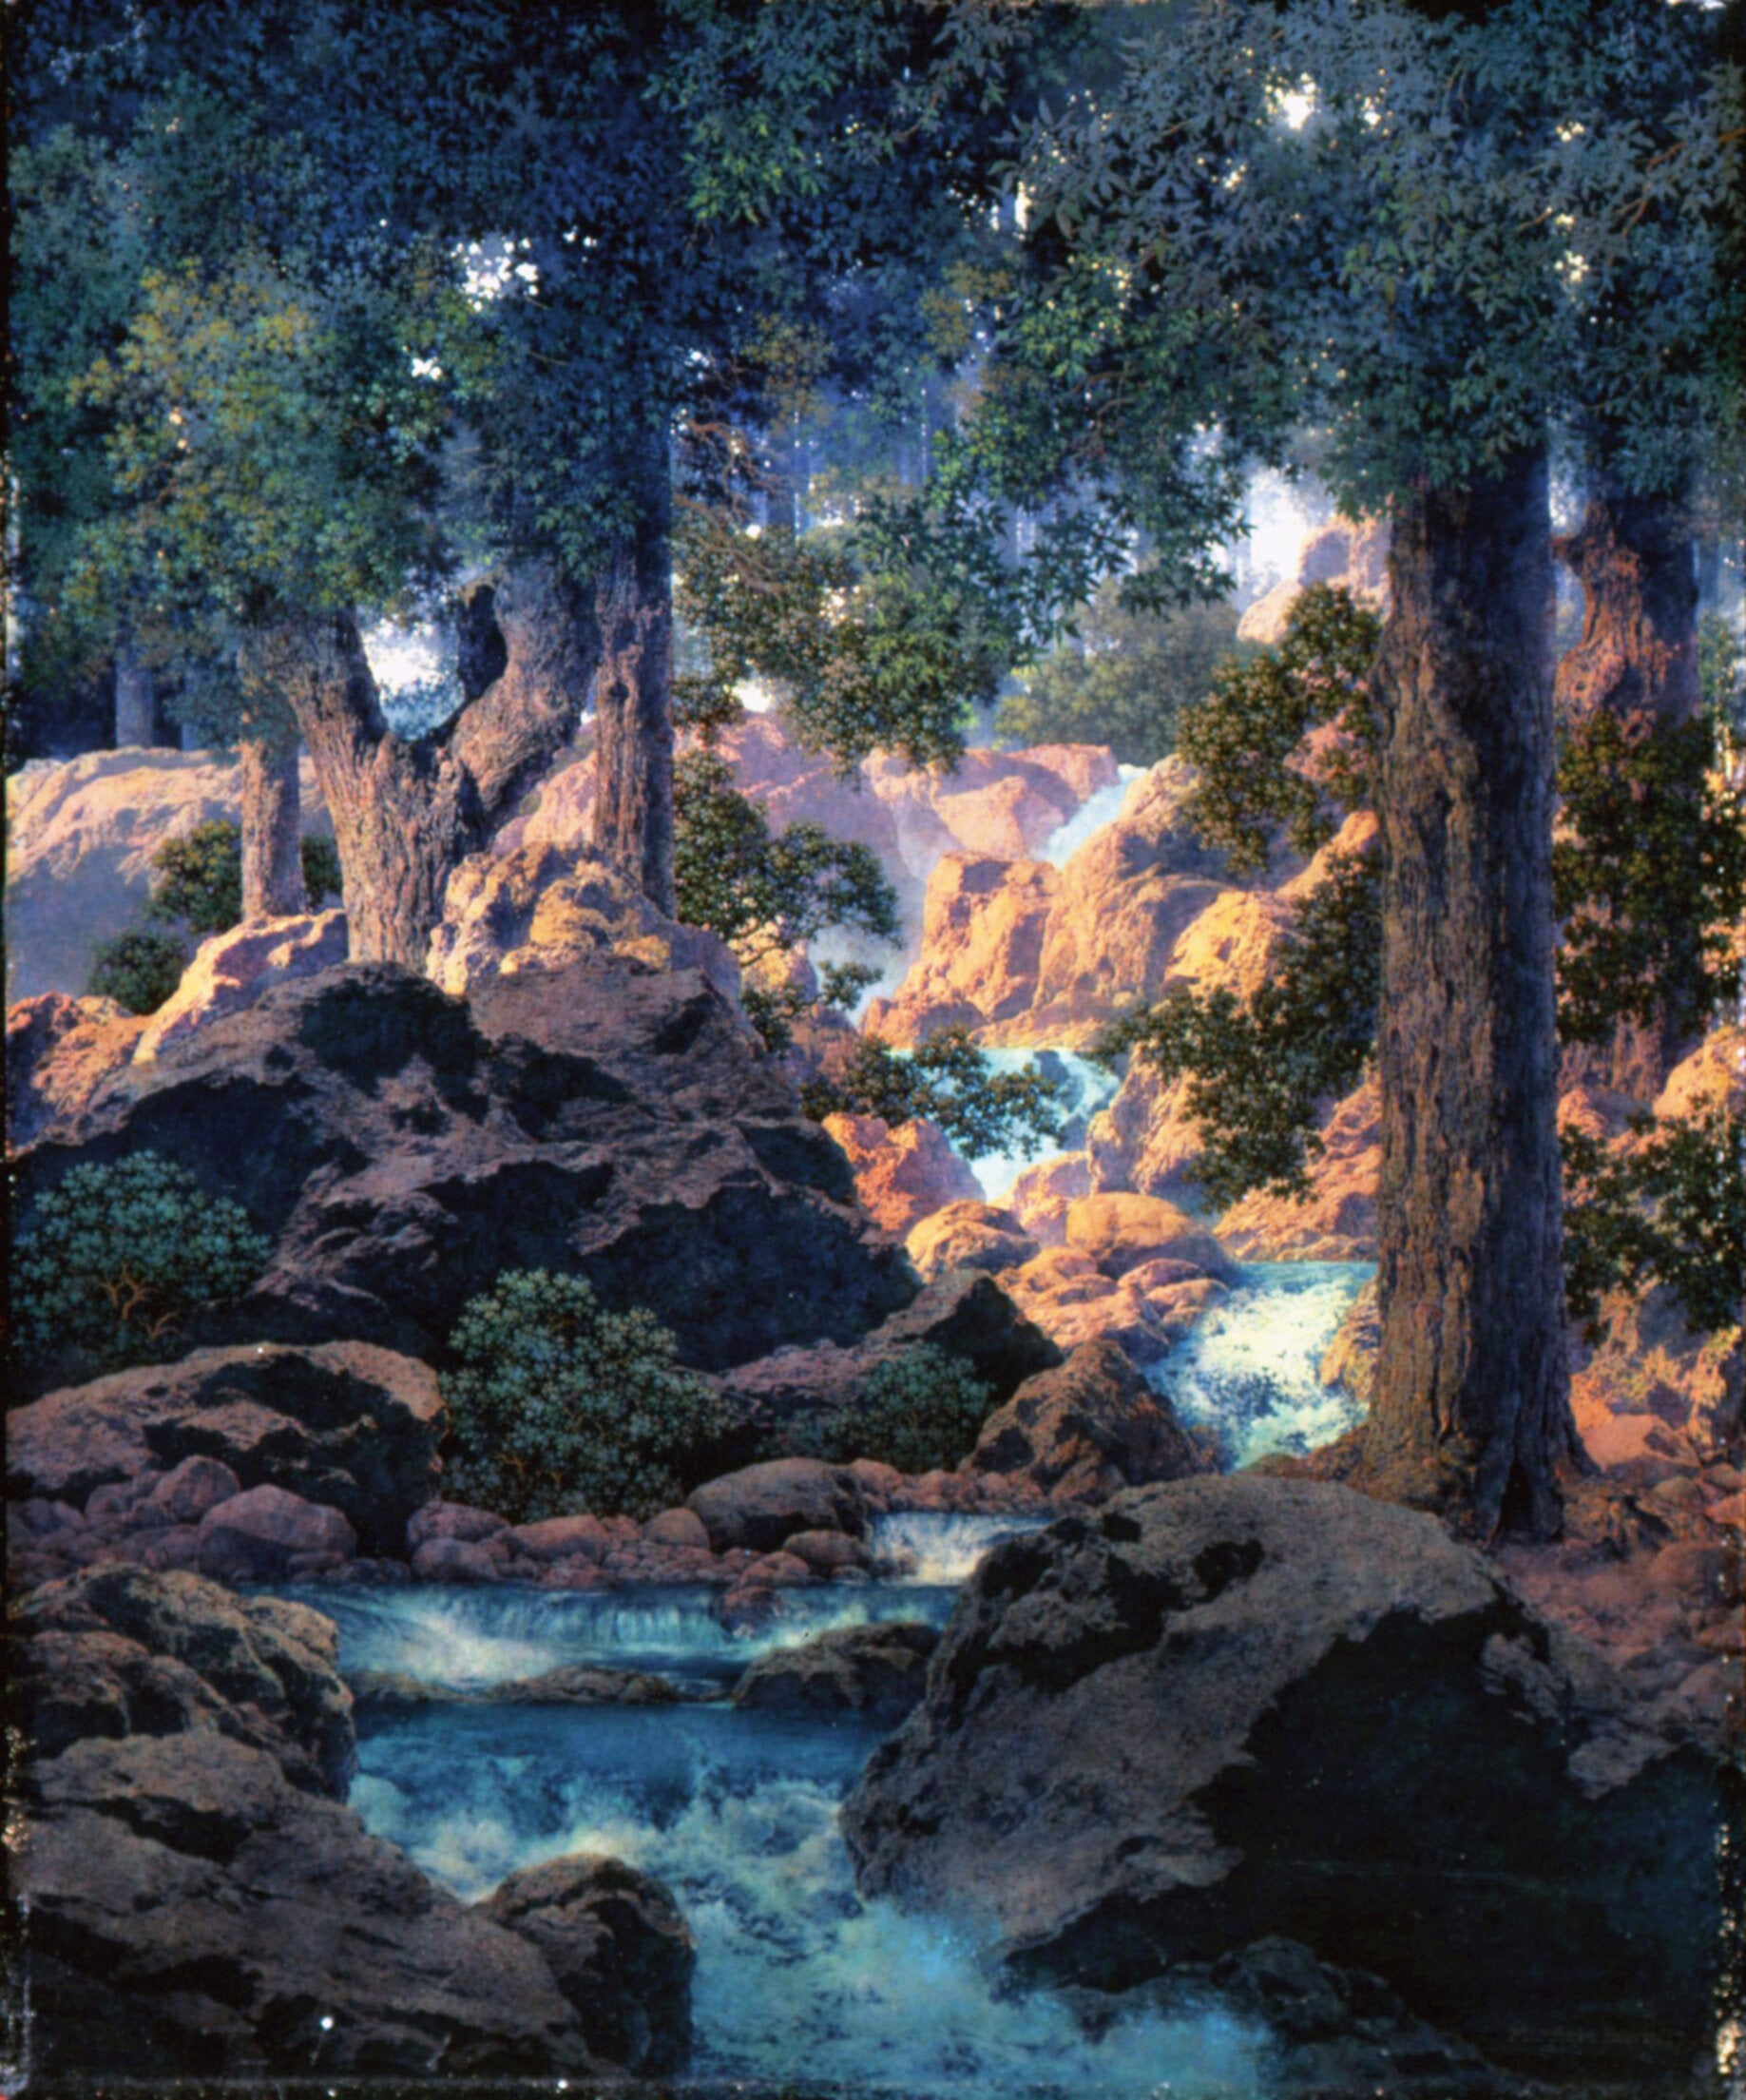 The dreamscapes of Maxfield Parrish